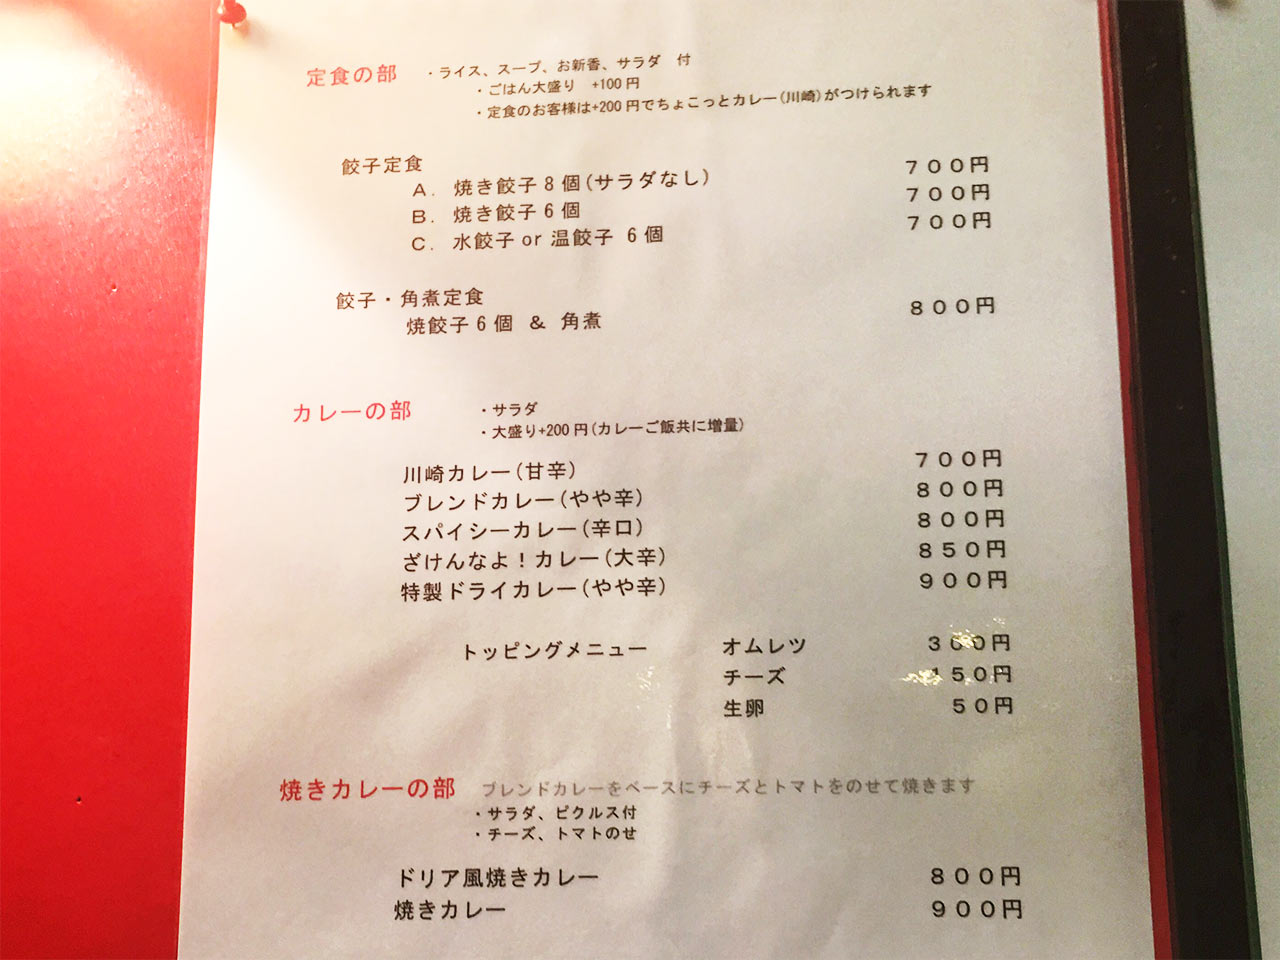 kawasaki-gyouzarow-menu